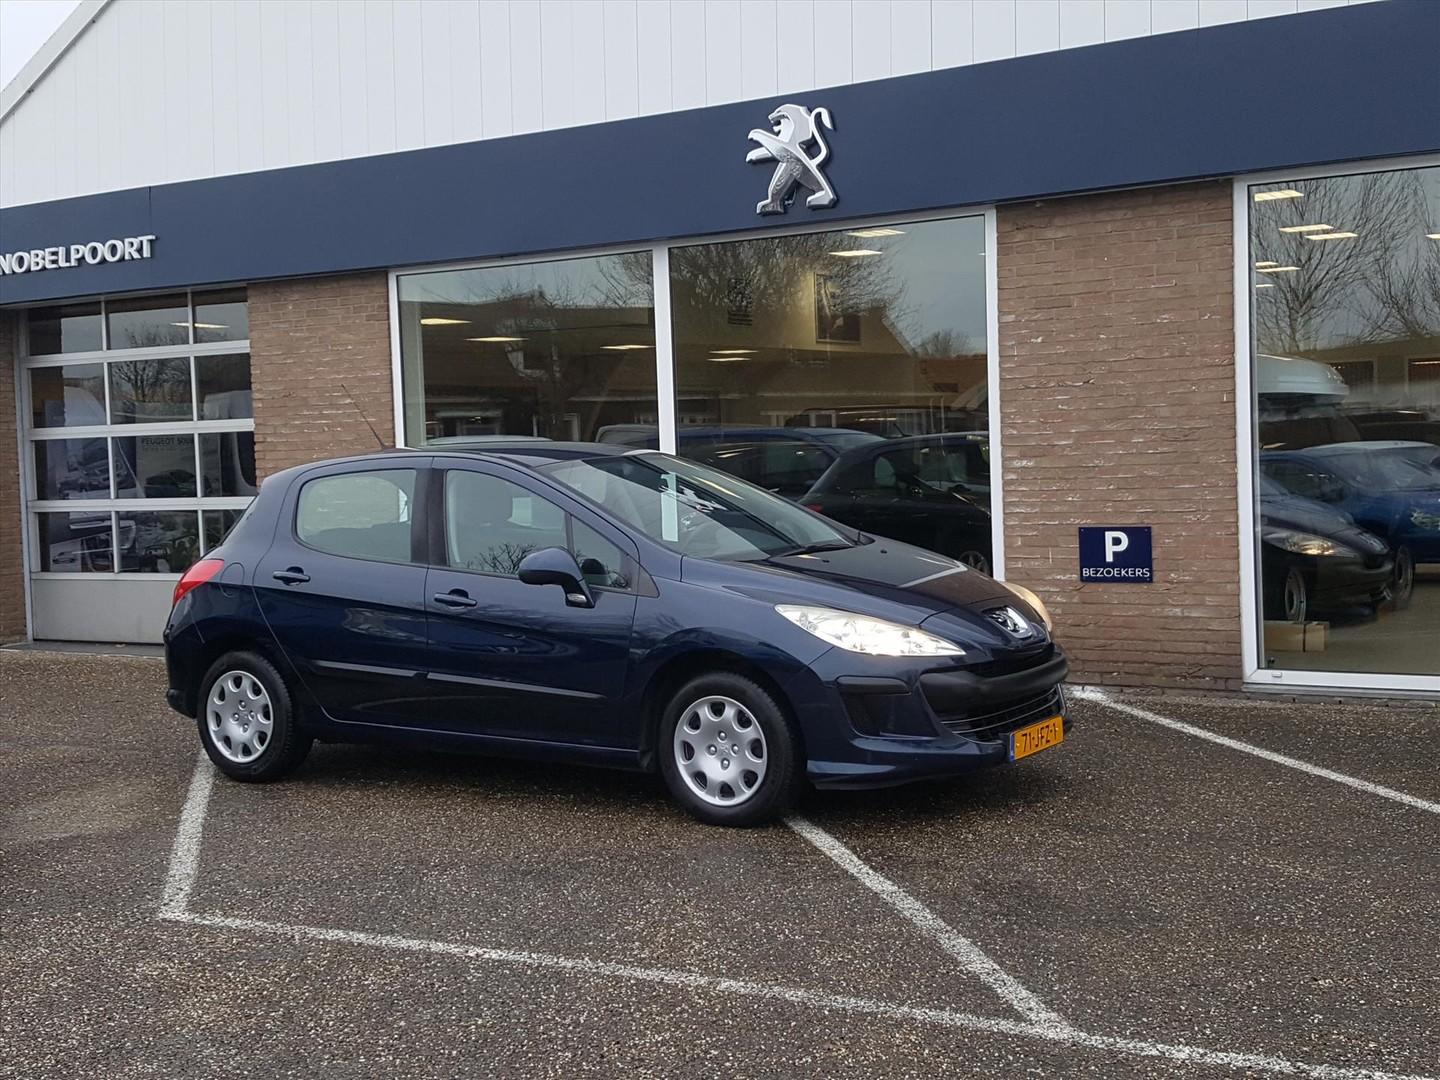 Peugeot 308 1.6 vti 16v 5drs x-line climate&cruise control bluetooth radiocd